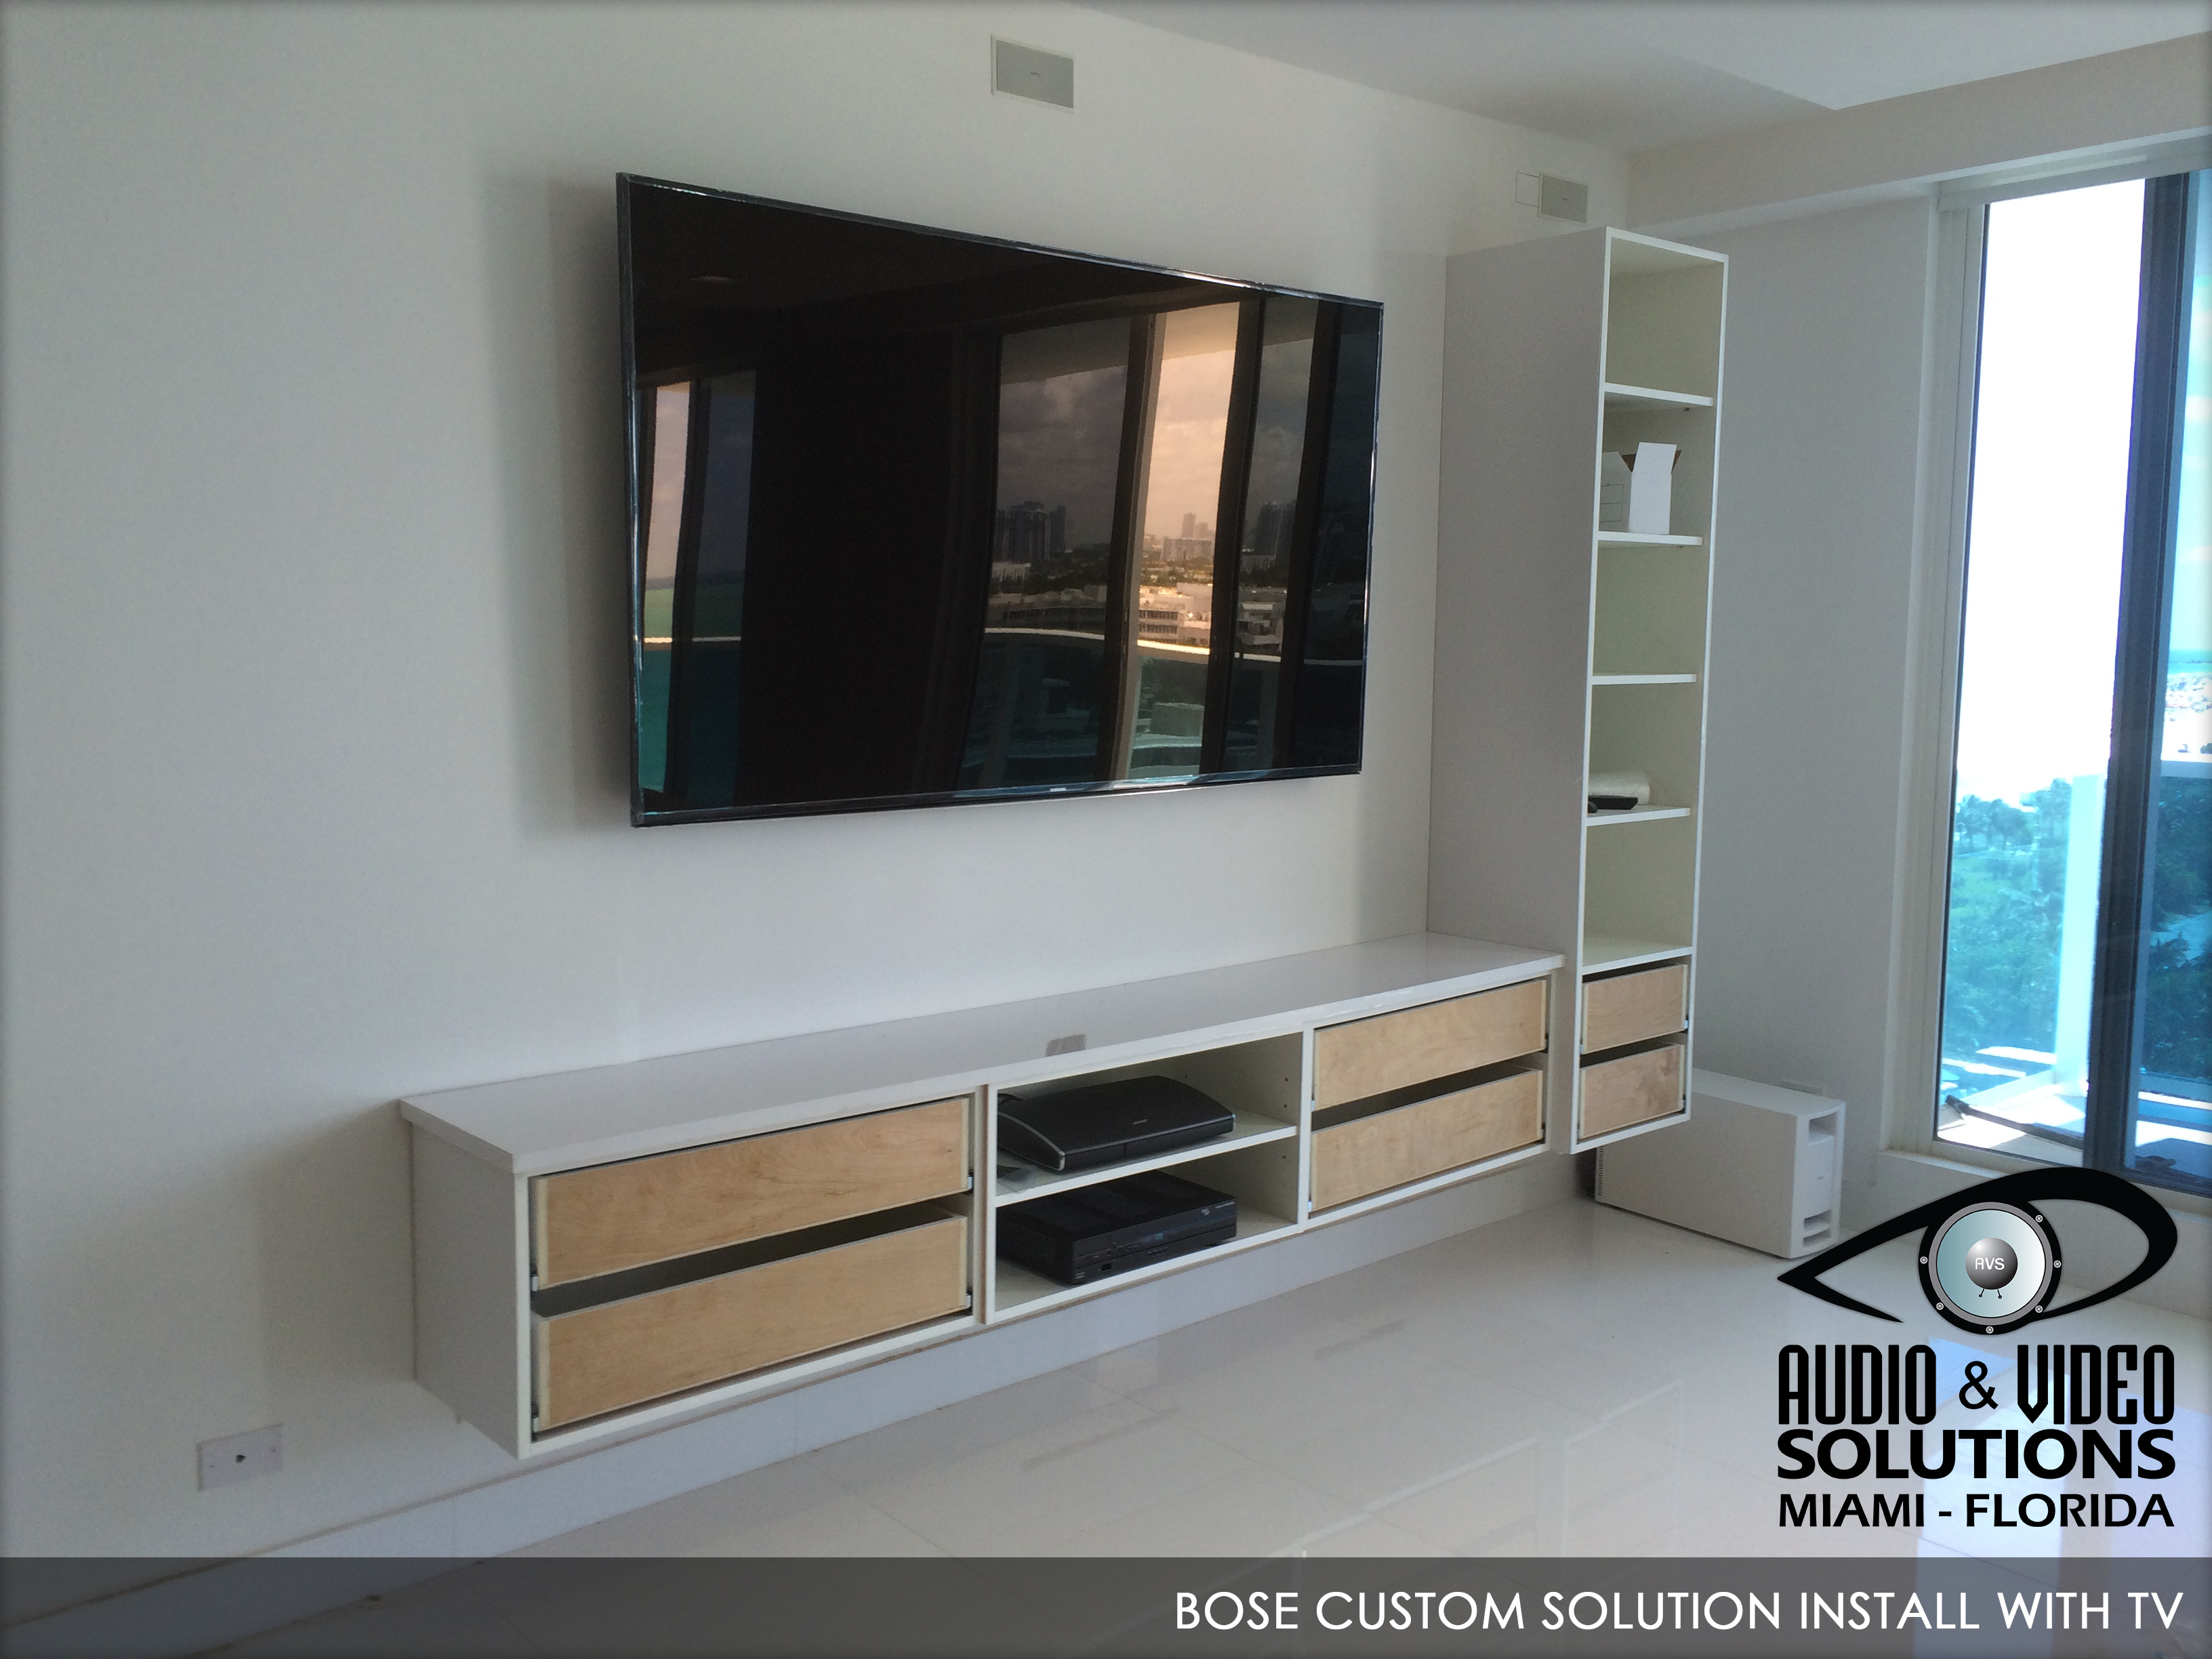 BOSE Custom Solution Install with TV